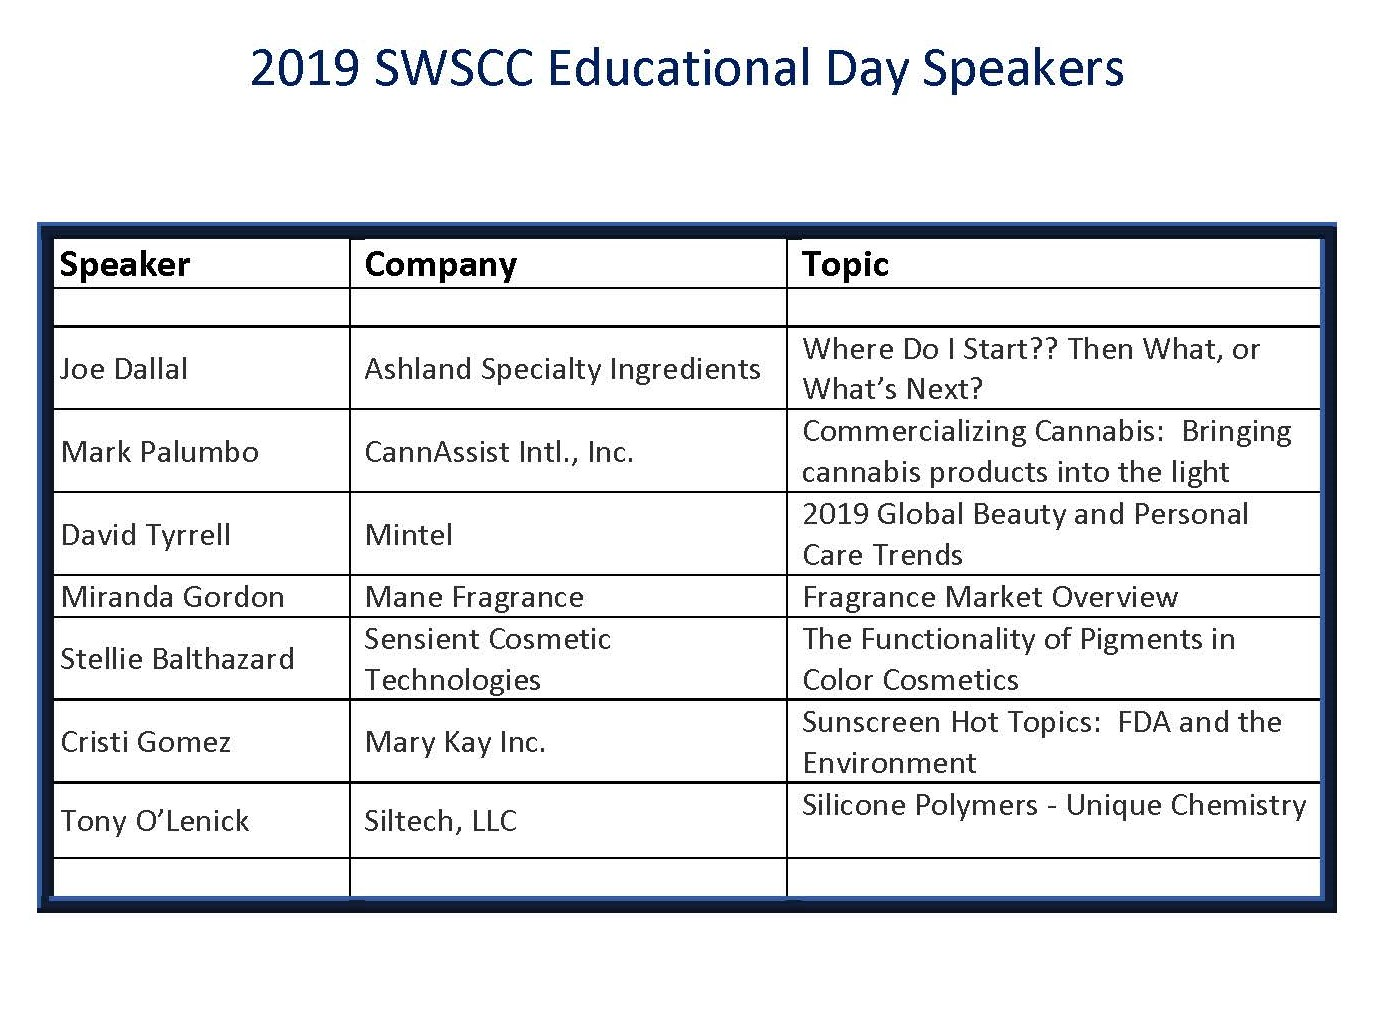 2019 SWSCC Educational Day Speakers